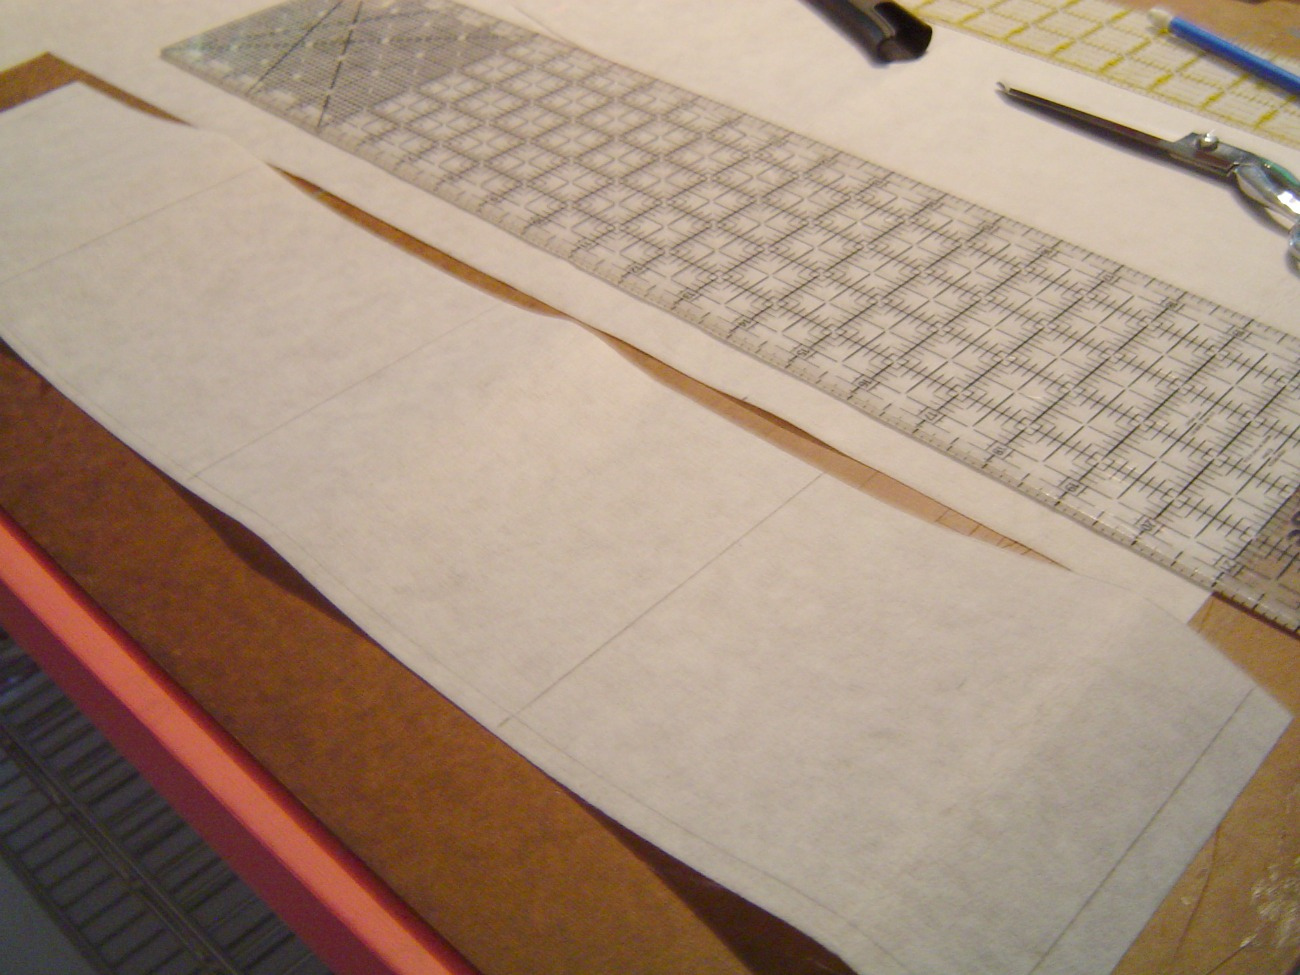 Picture of Cutting Fabric for Bag